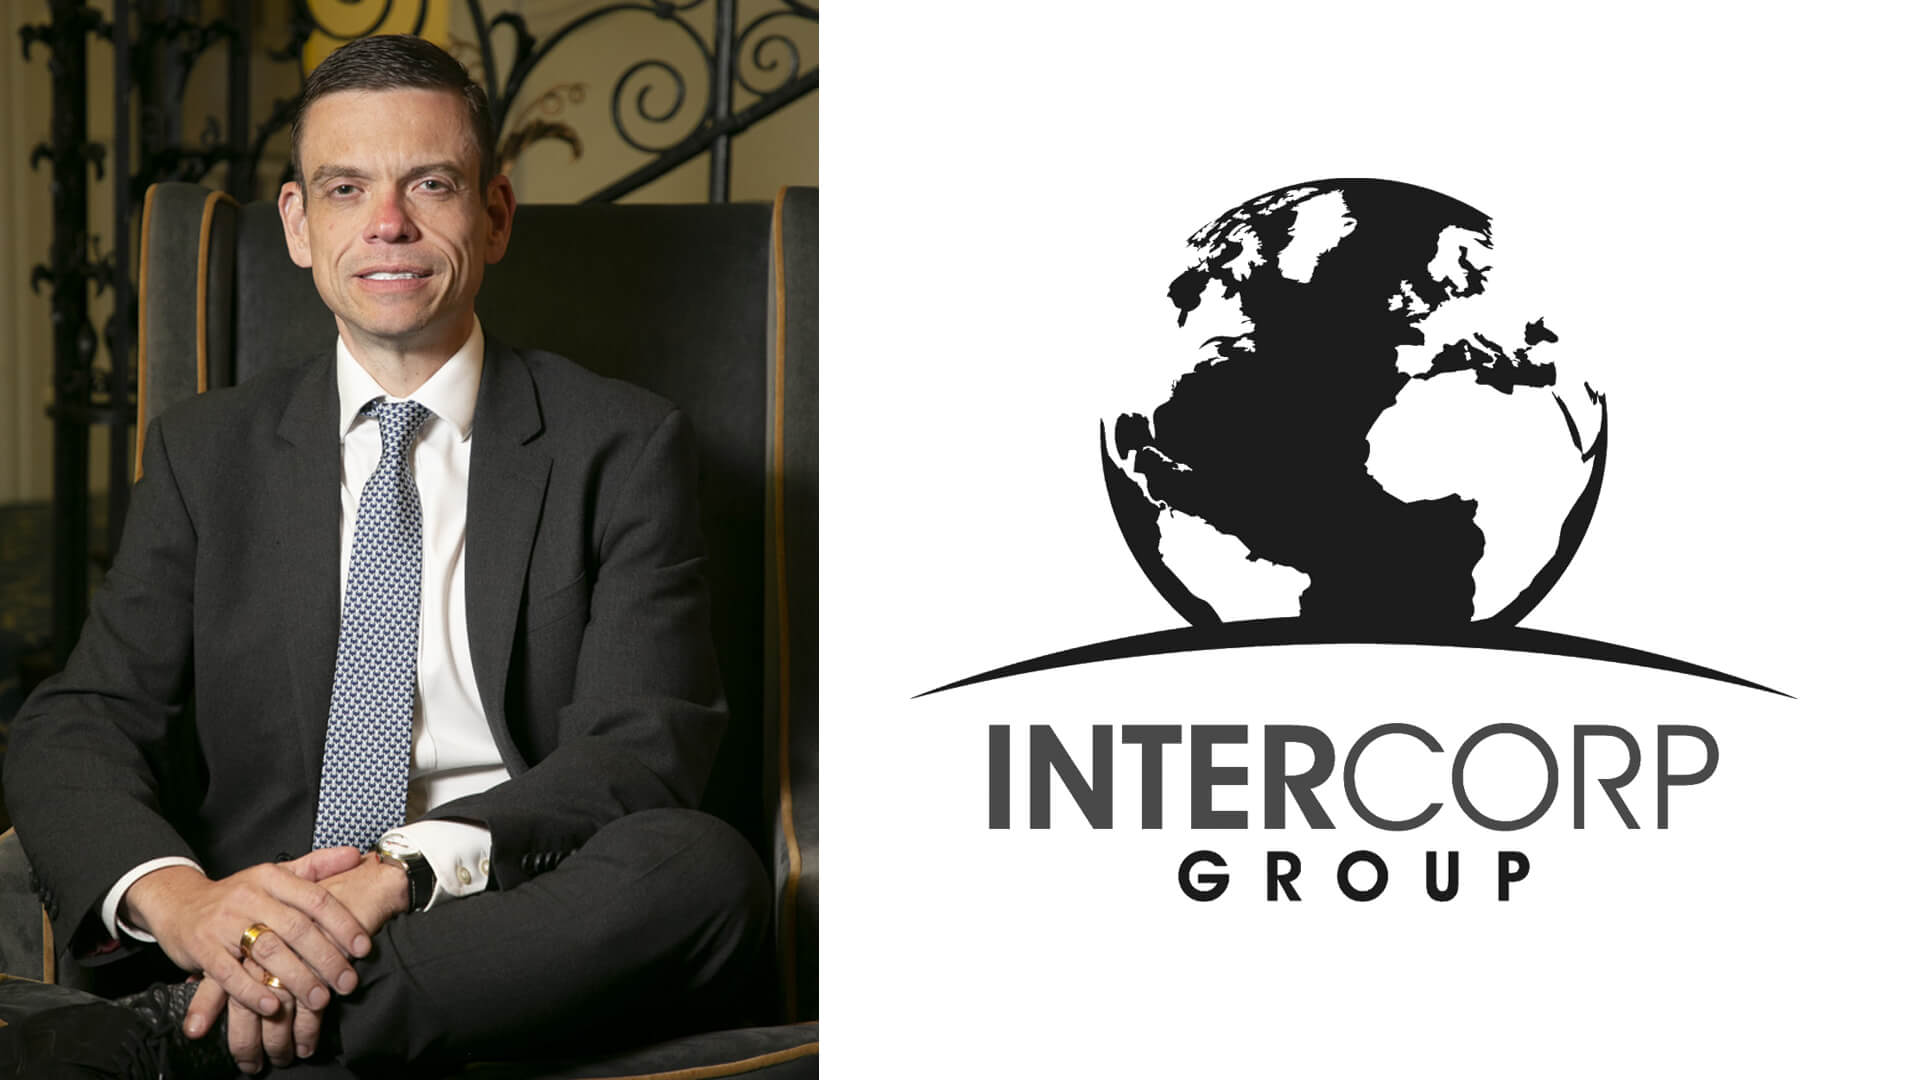 Intercorp